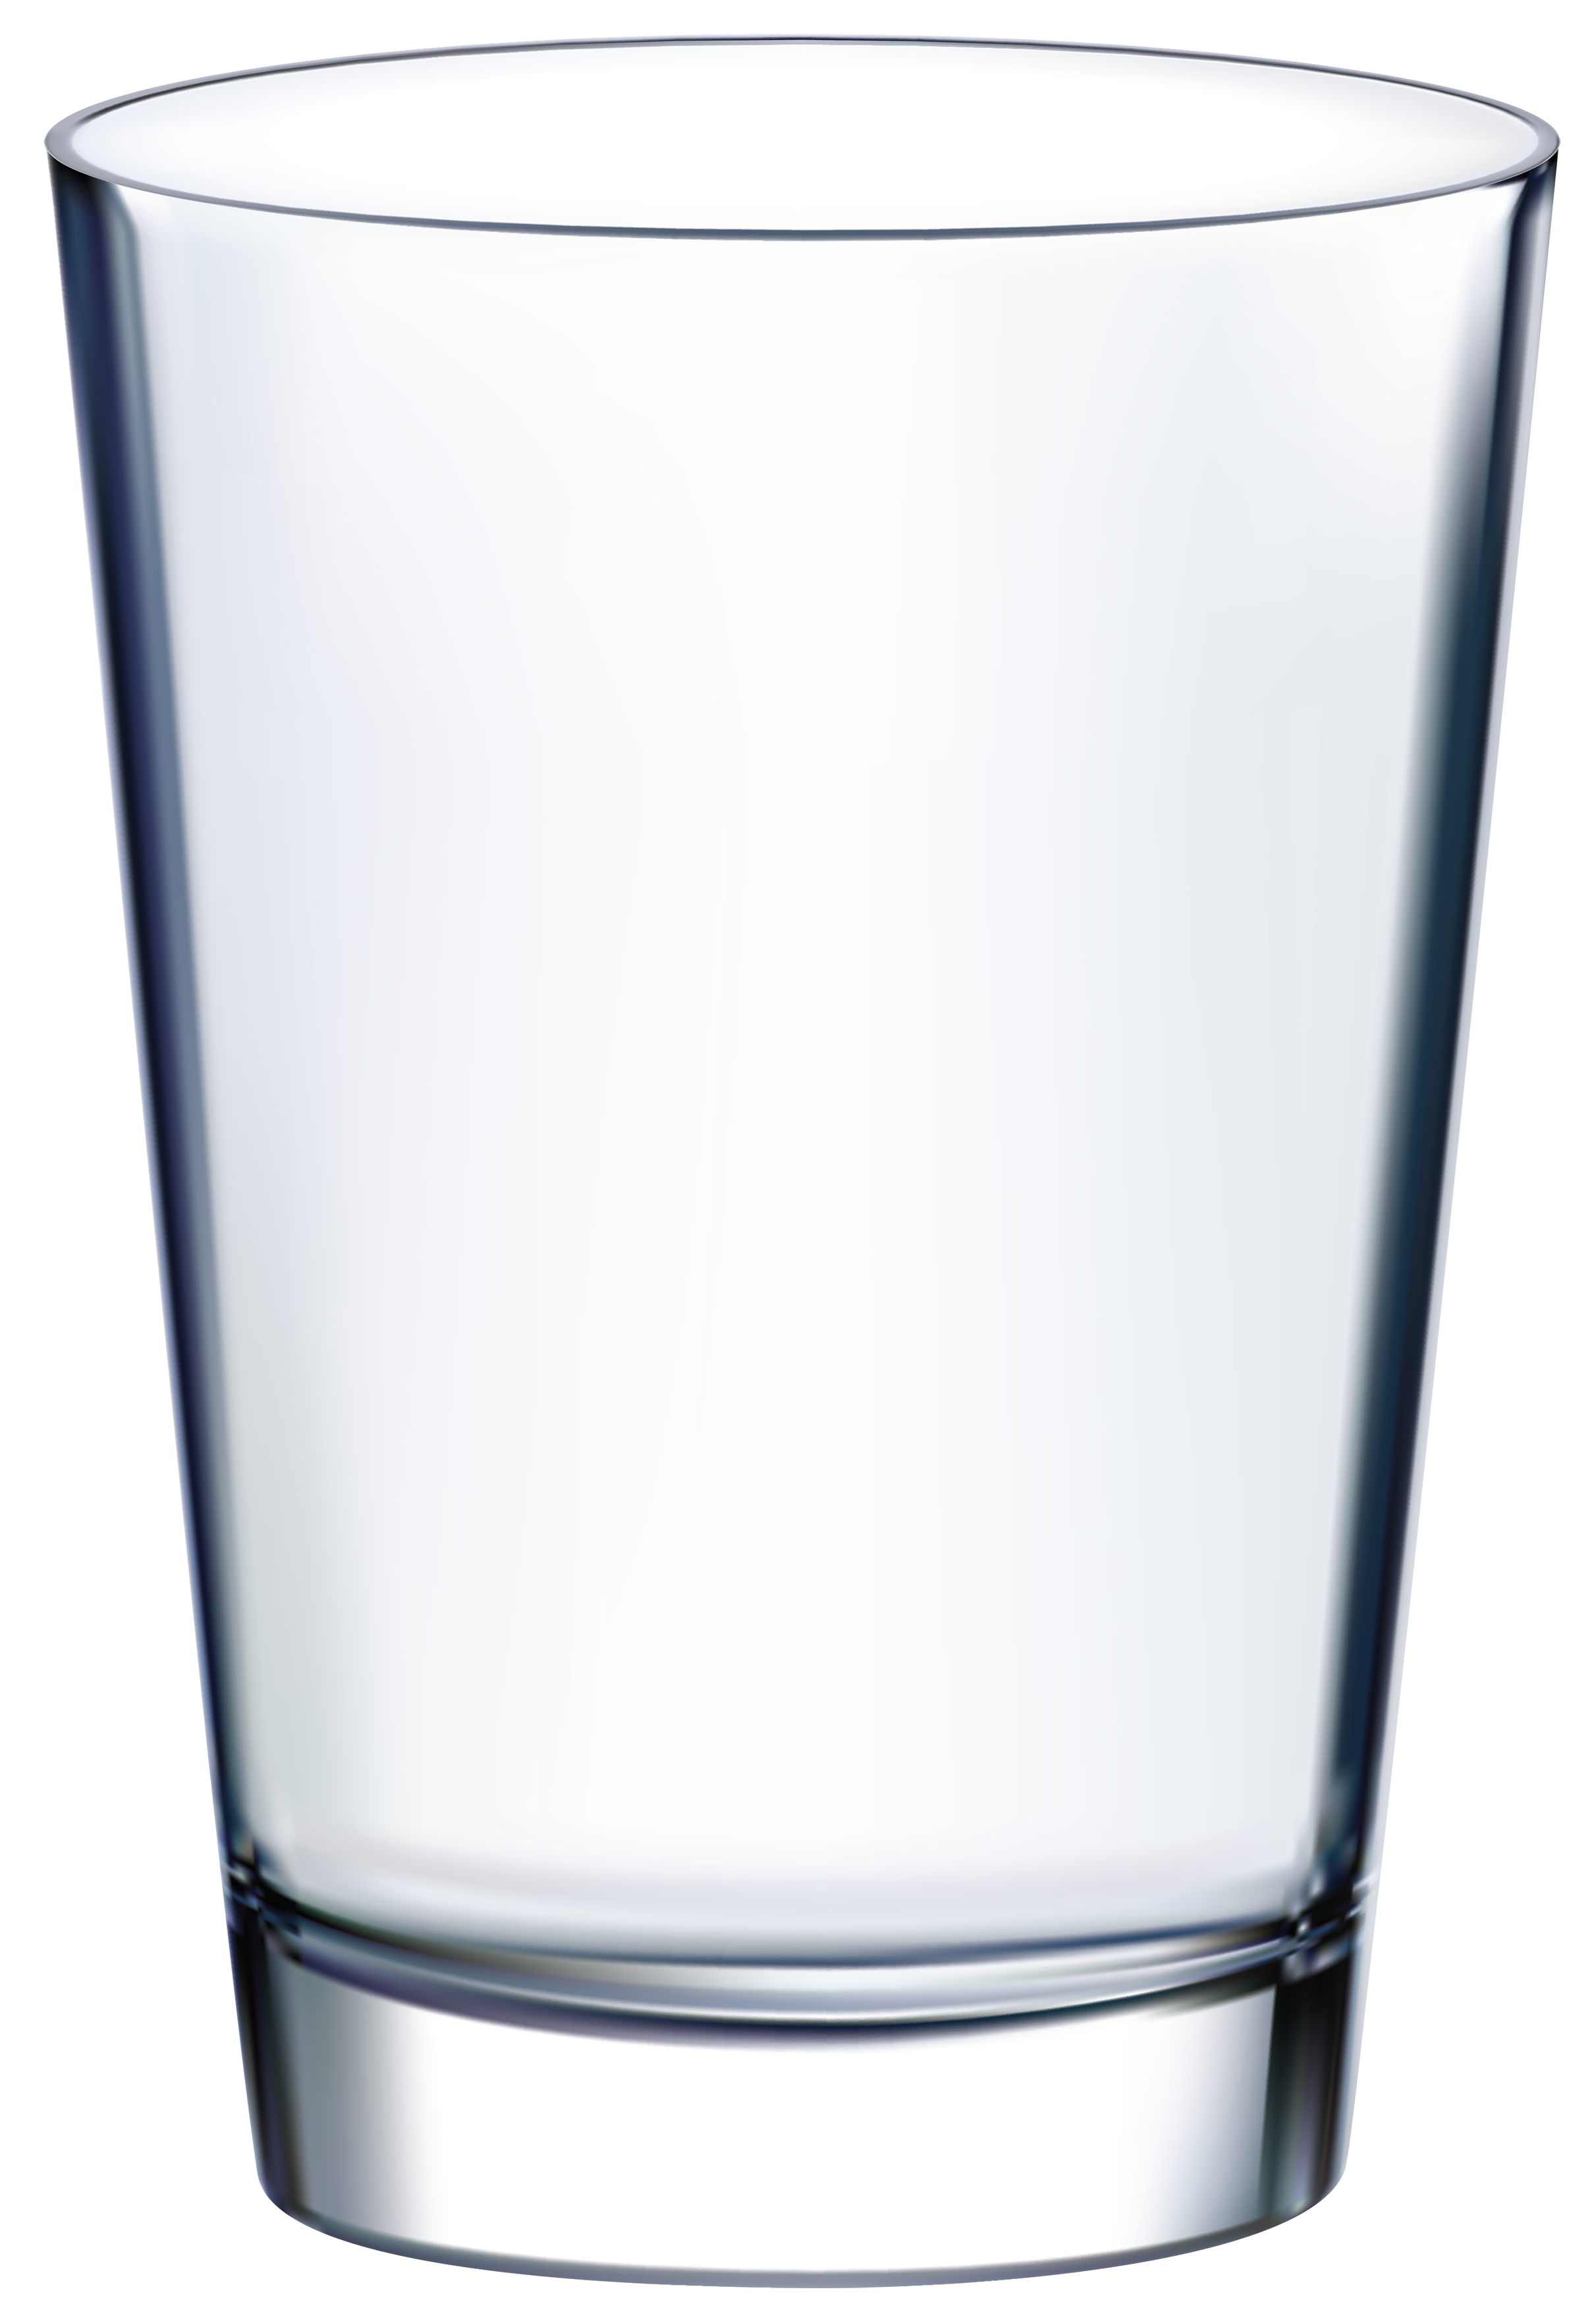 Glass png. Clipart image best web